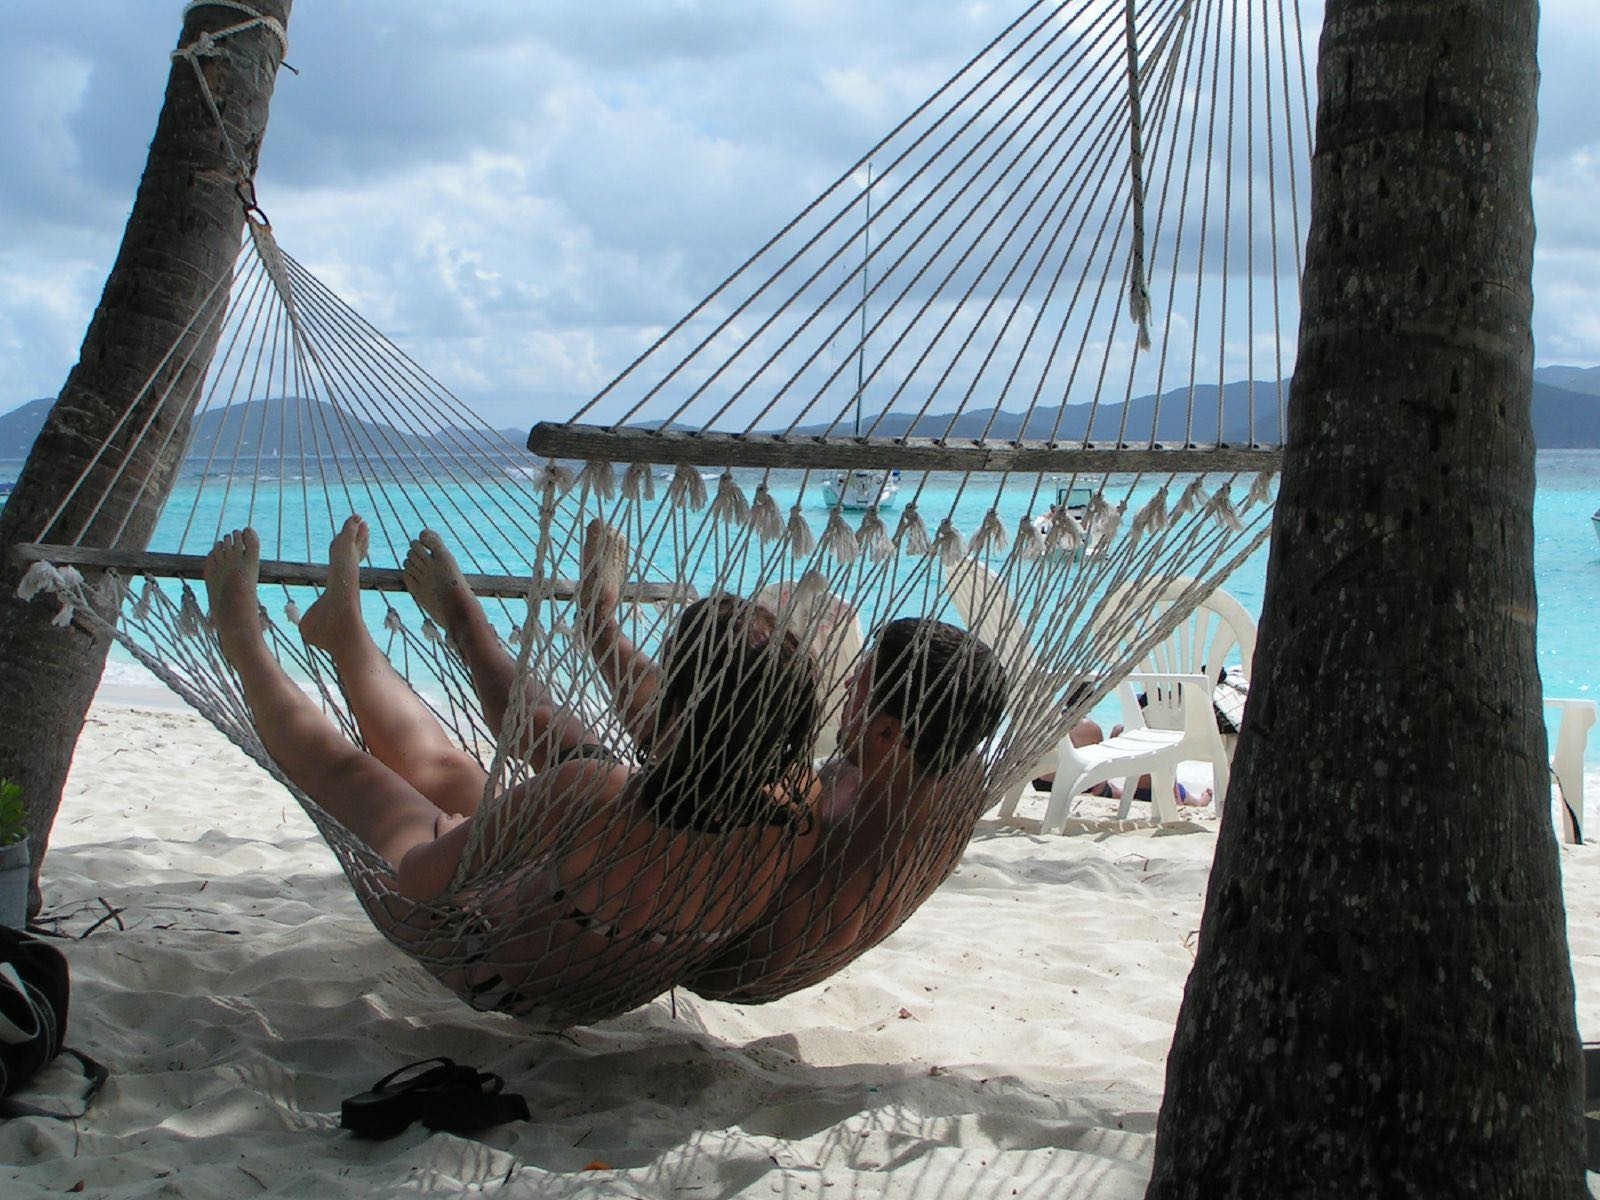 Couple_in_Hammock